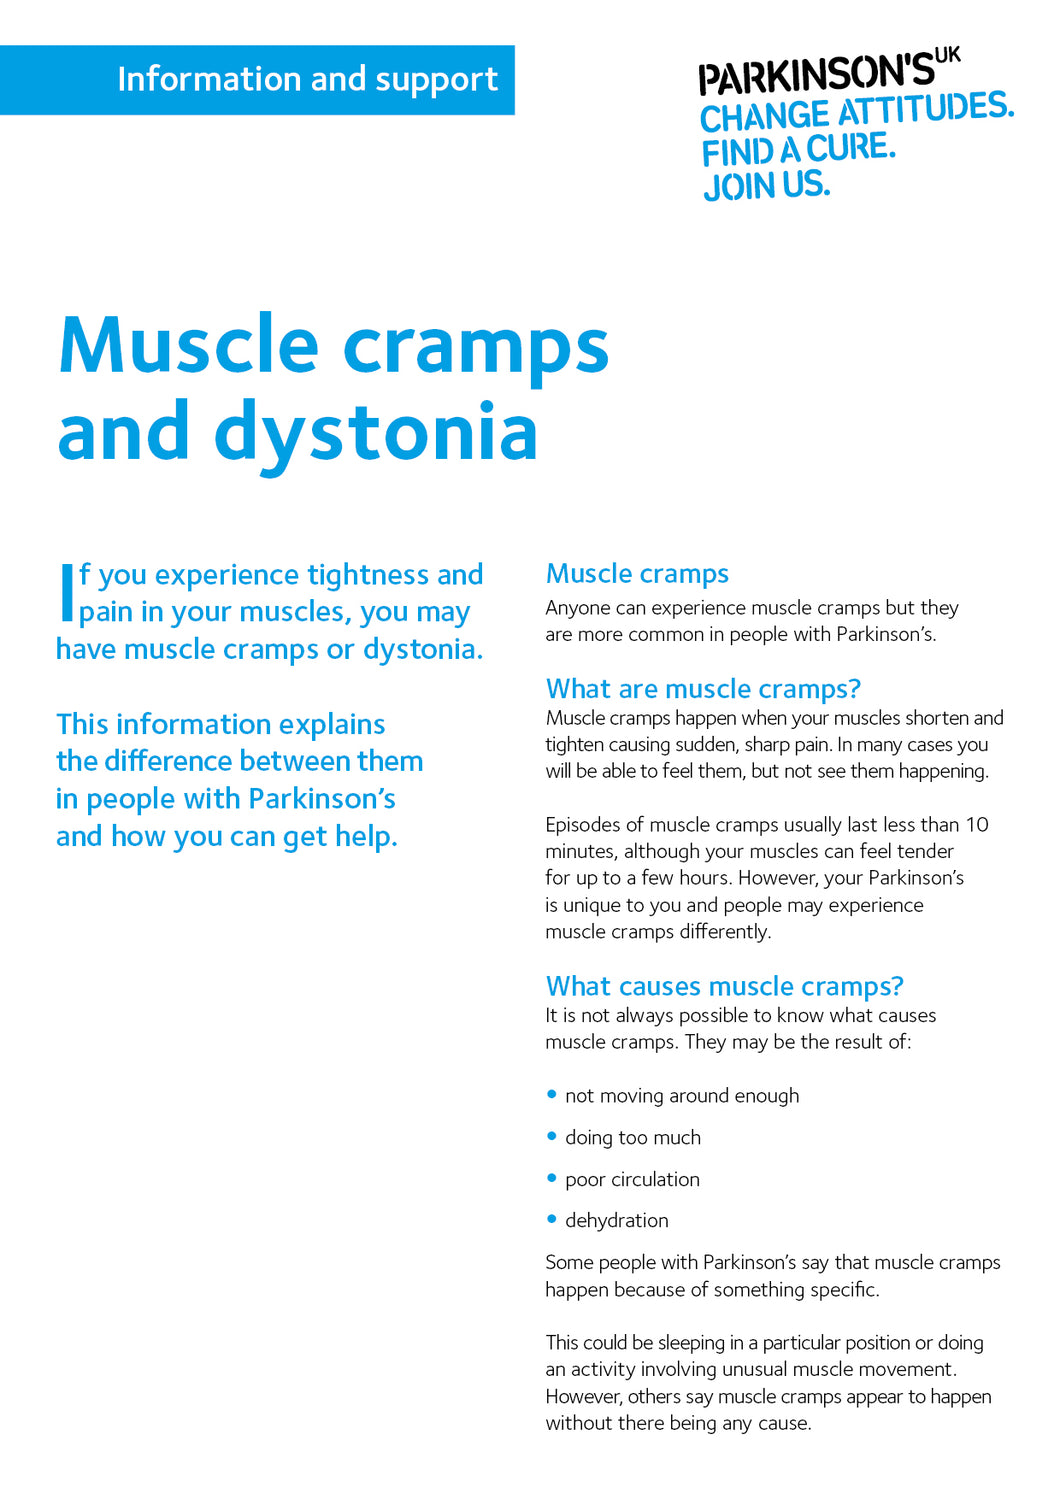 Muscle cramps and dystonia - Parkinson's shop